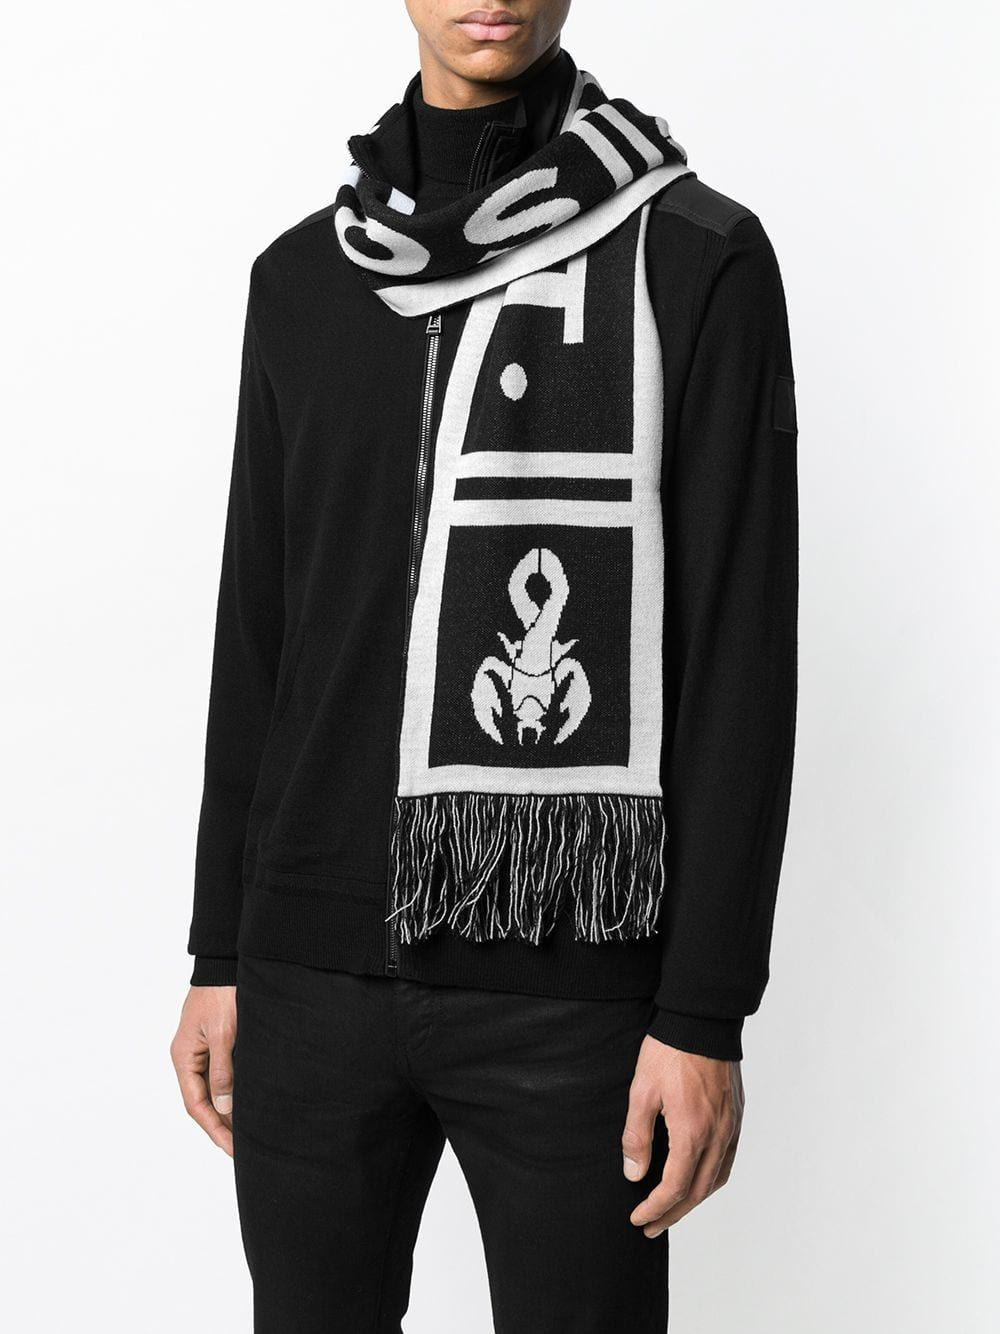 beb49f8f521 Belstaff Belstaff x Sophnet Football Scarf in 2019 | Football ...